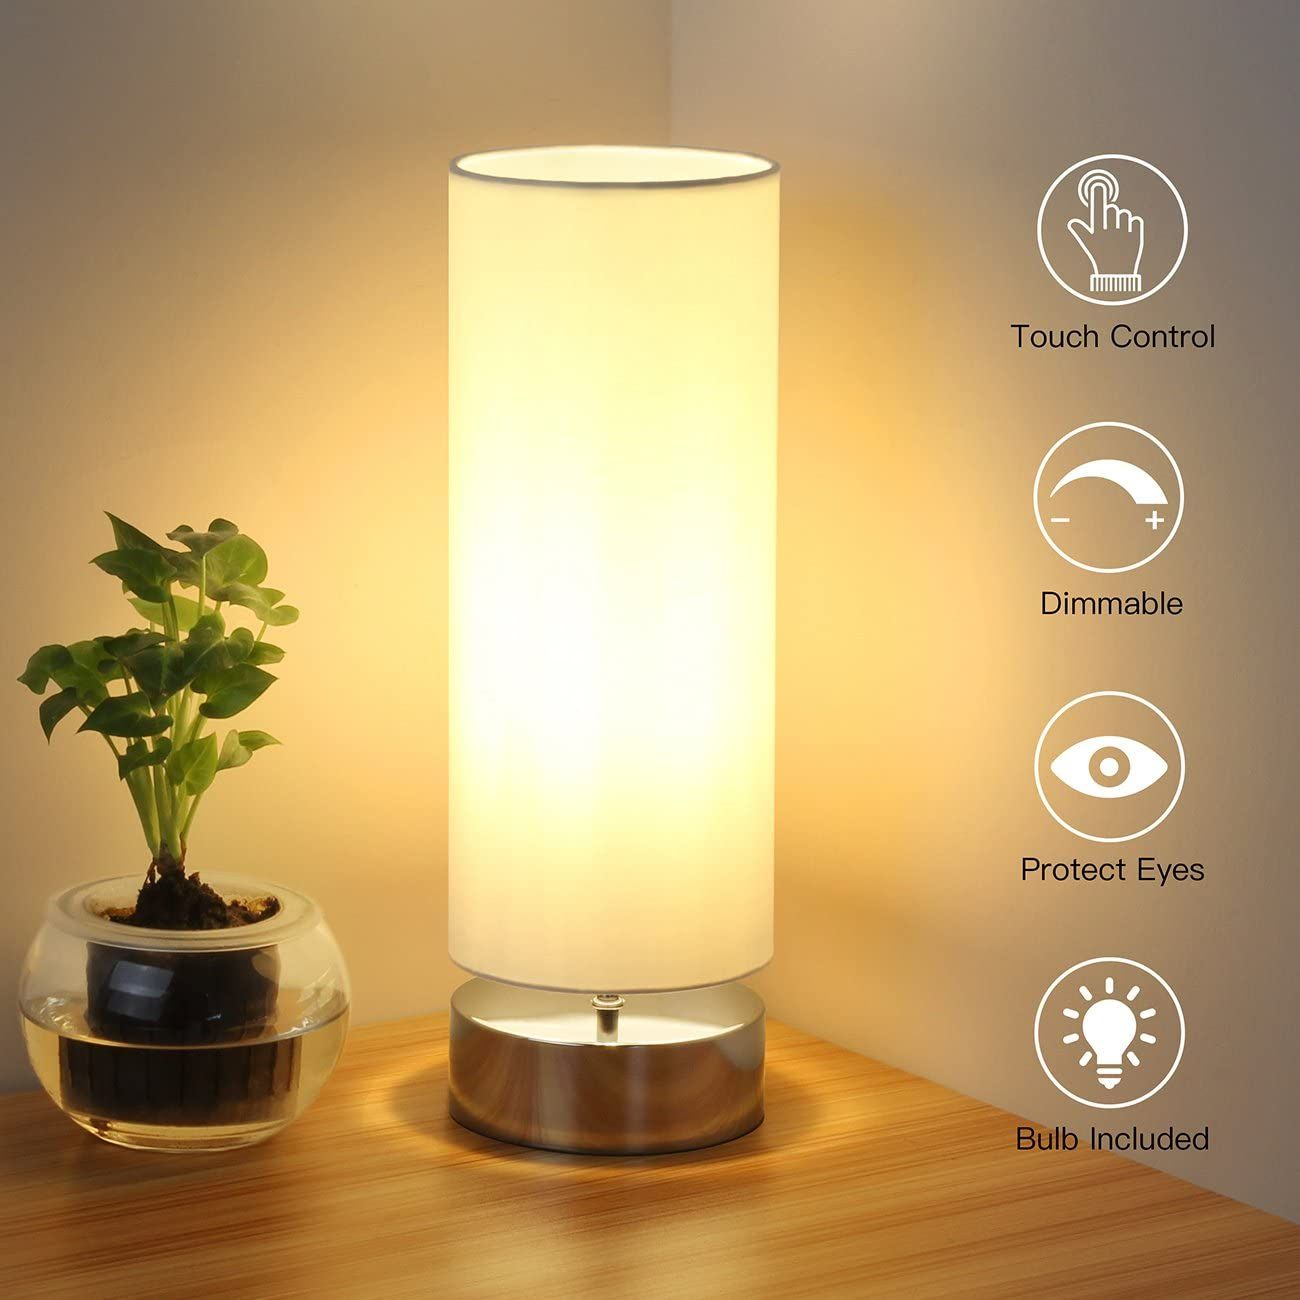 Touch Control Table Lamp Bedside Minimalist Desk Lamp Modern Accent Lamp Dimmable Touch Light Wit In 2020 Minimalist Desk Lamp Antique Lamp Shades Painting Lamp Shades